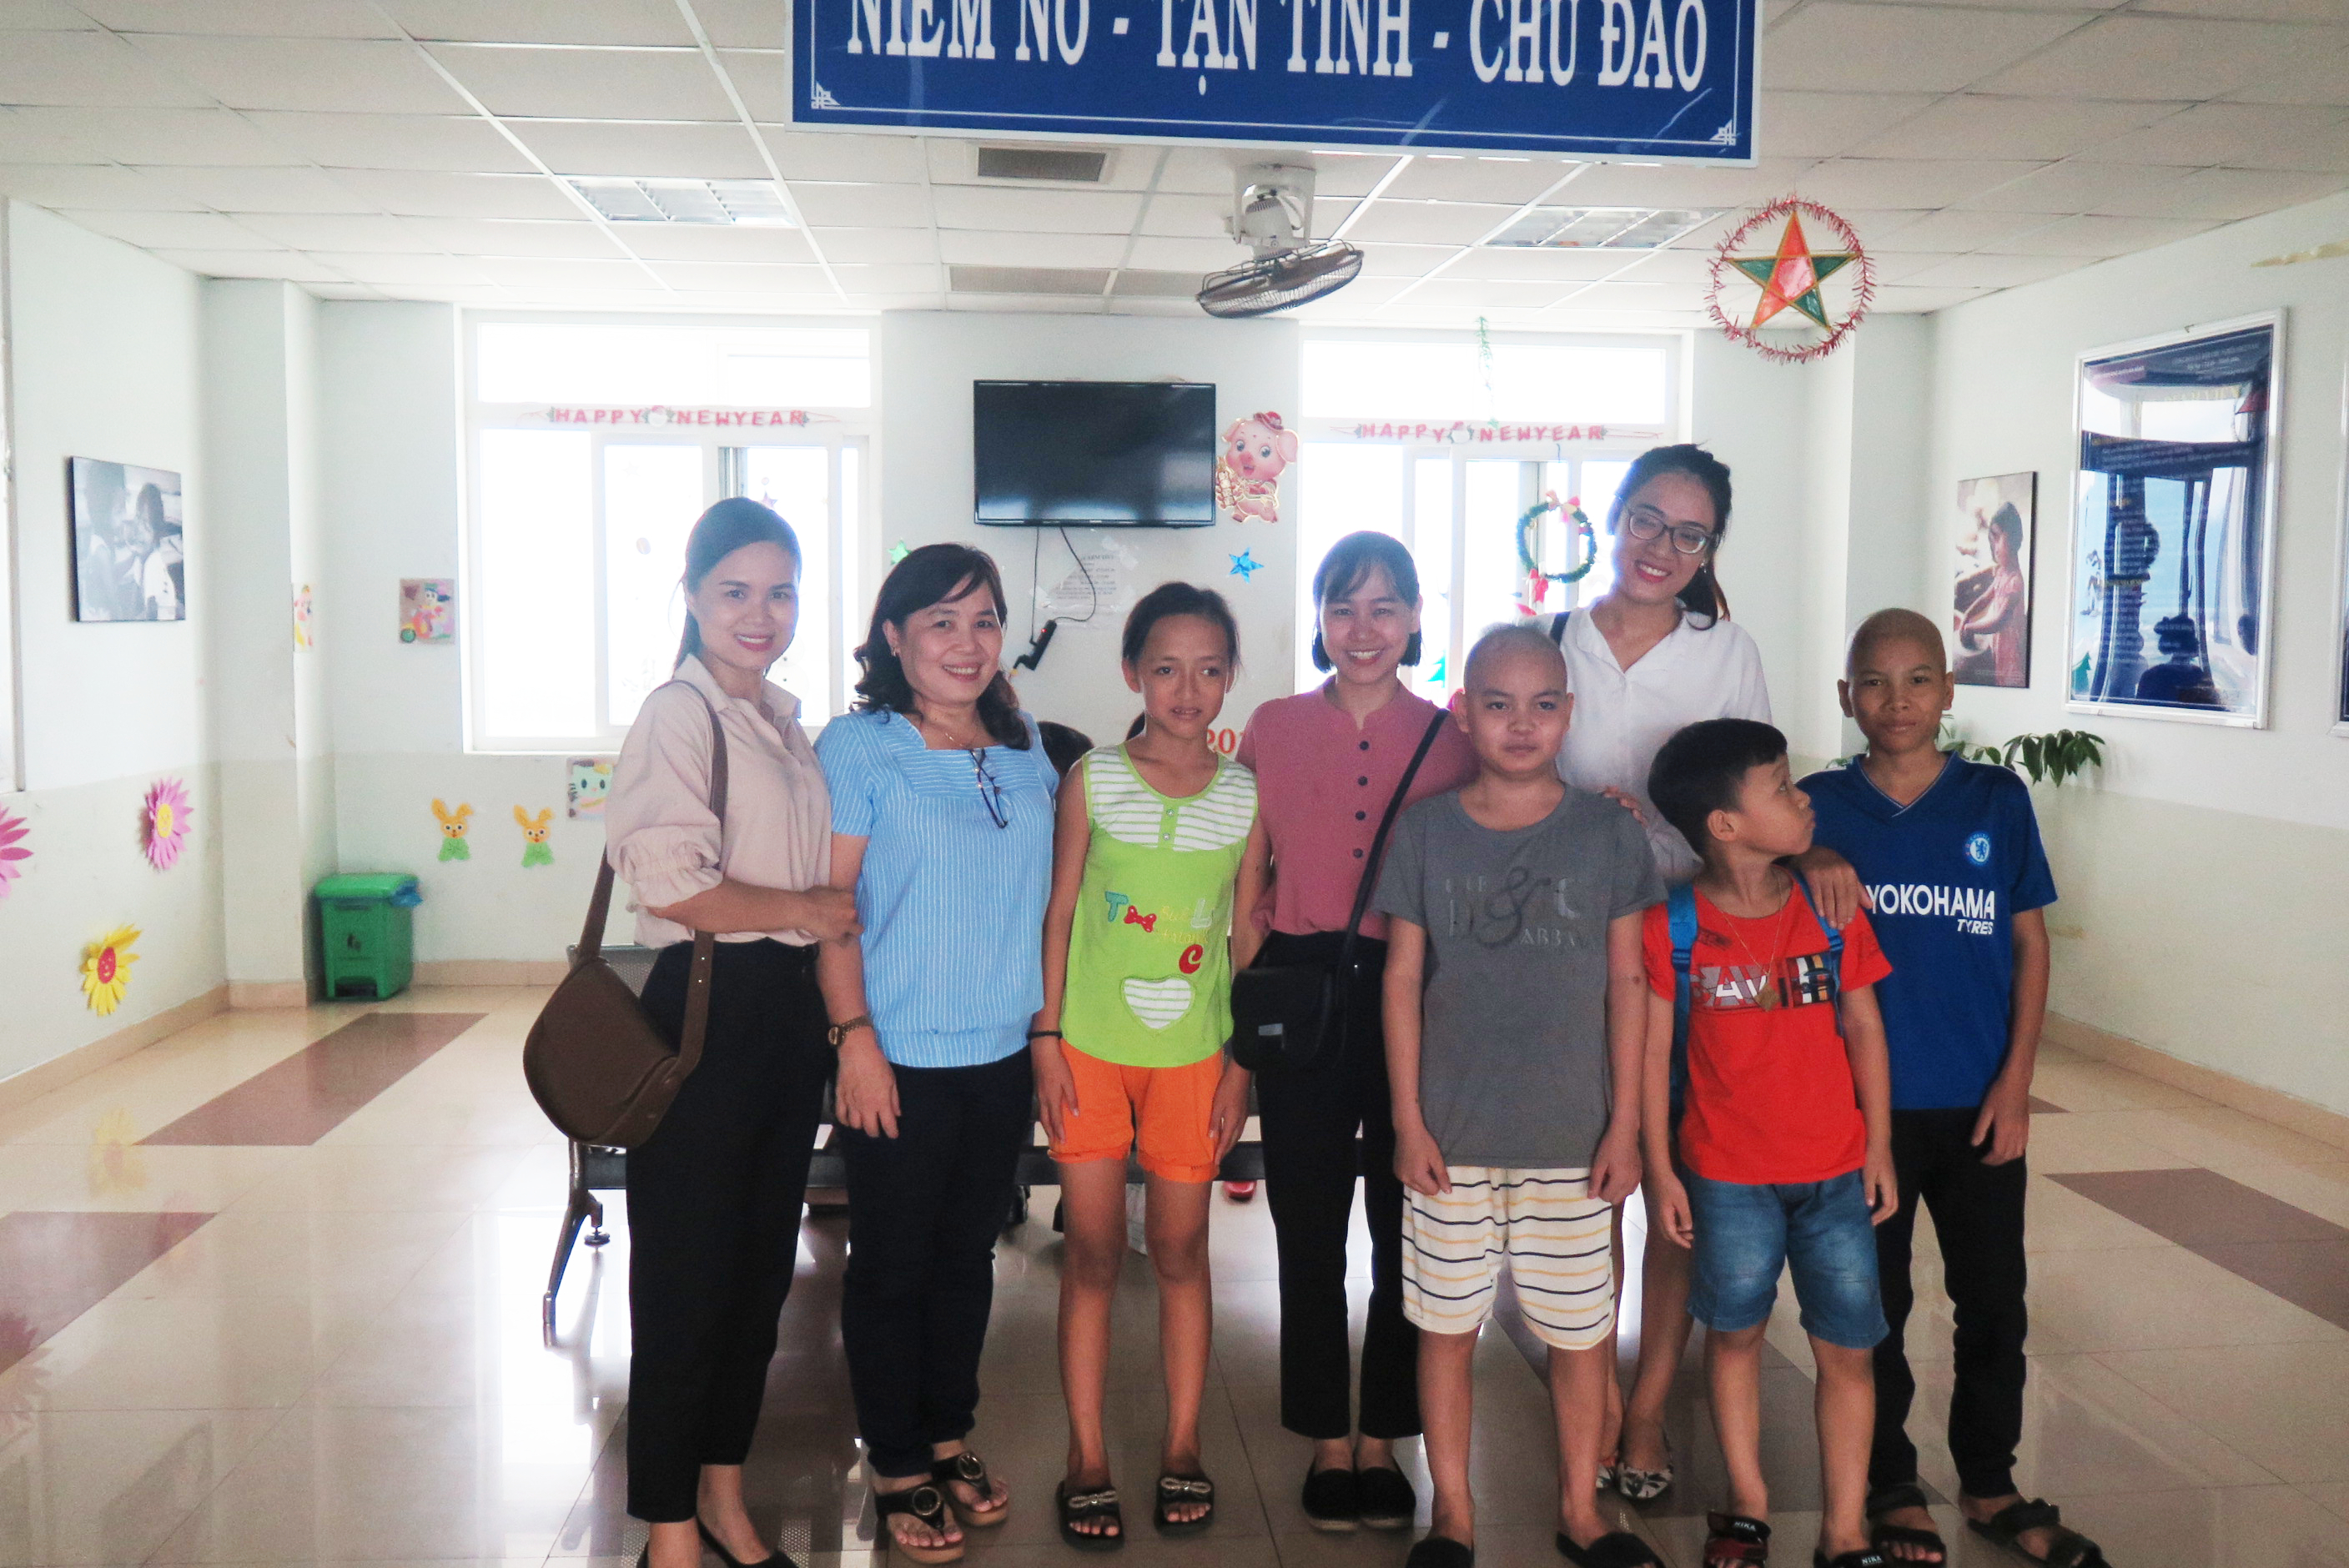 Danapha visited children treated in Danang Oncology Hospital